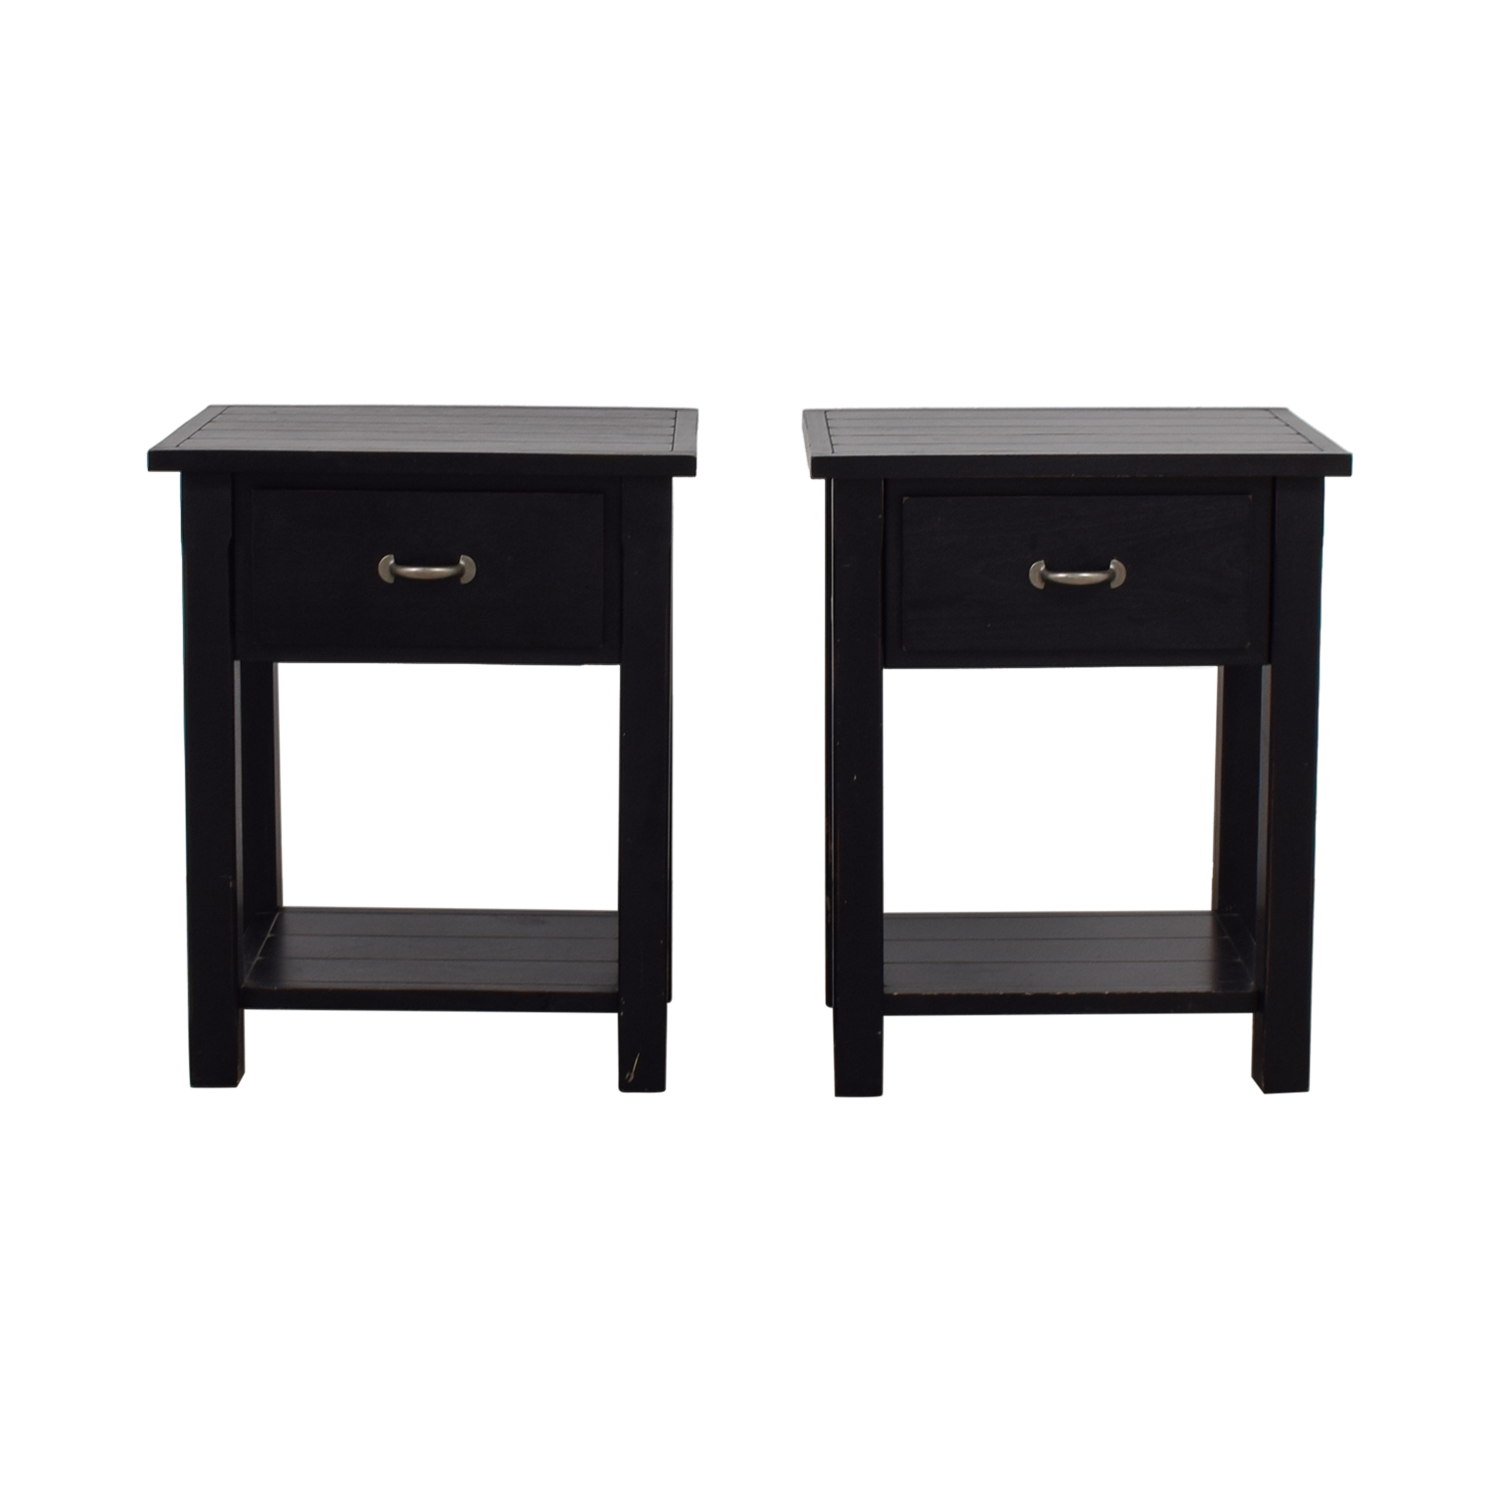 Pottery Barn Pottery Barn Black Single Drawer Side Tables on sale